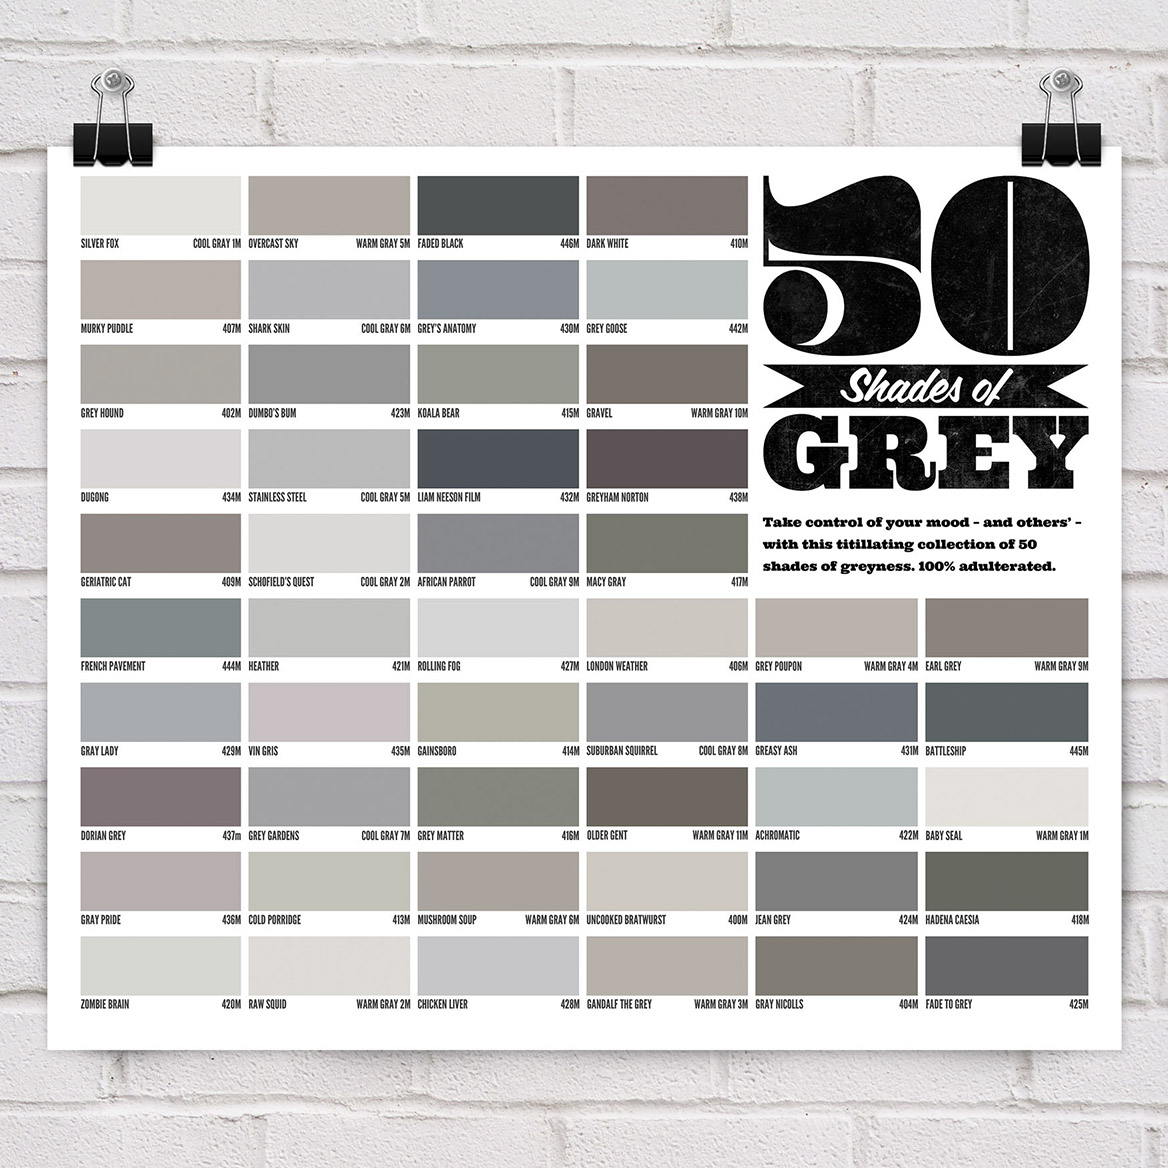 Shads Of Gray 50 Shades Of Grey Poster